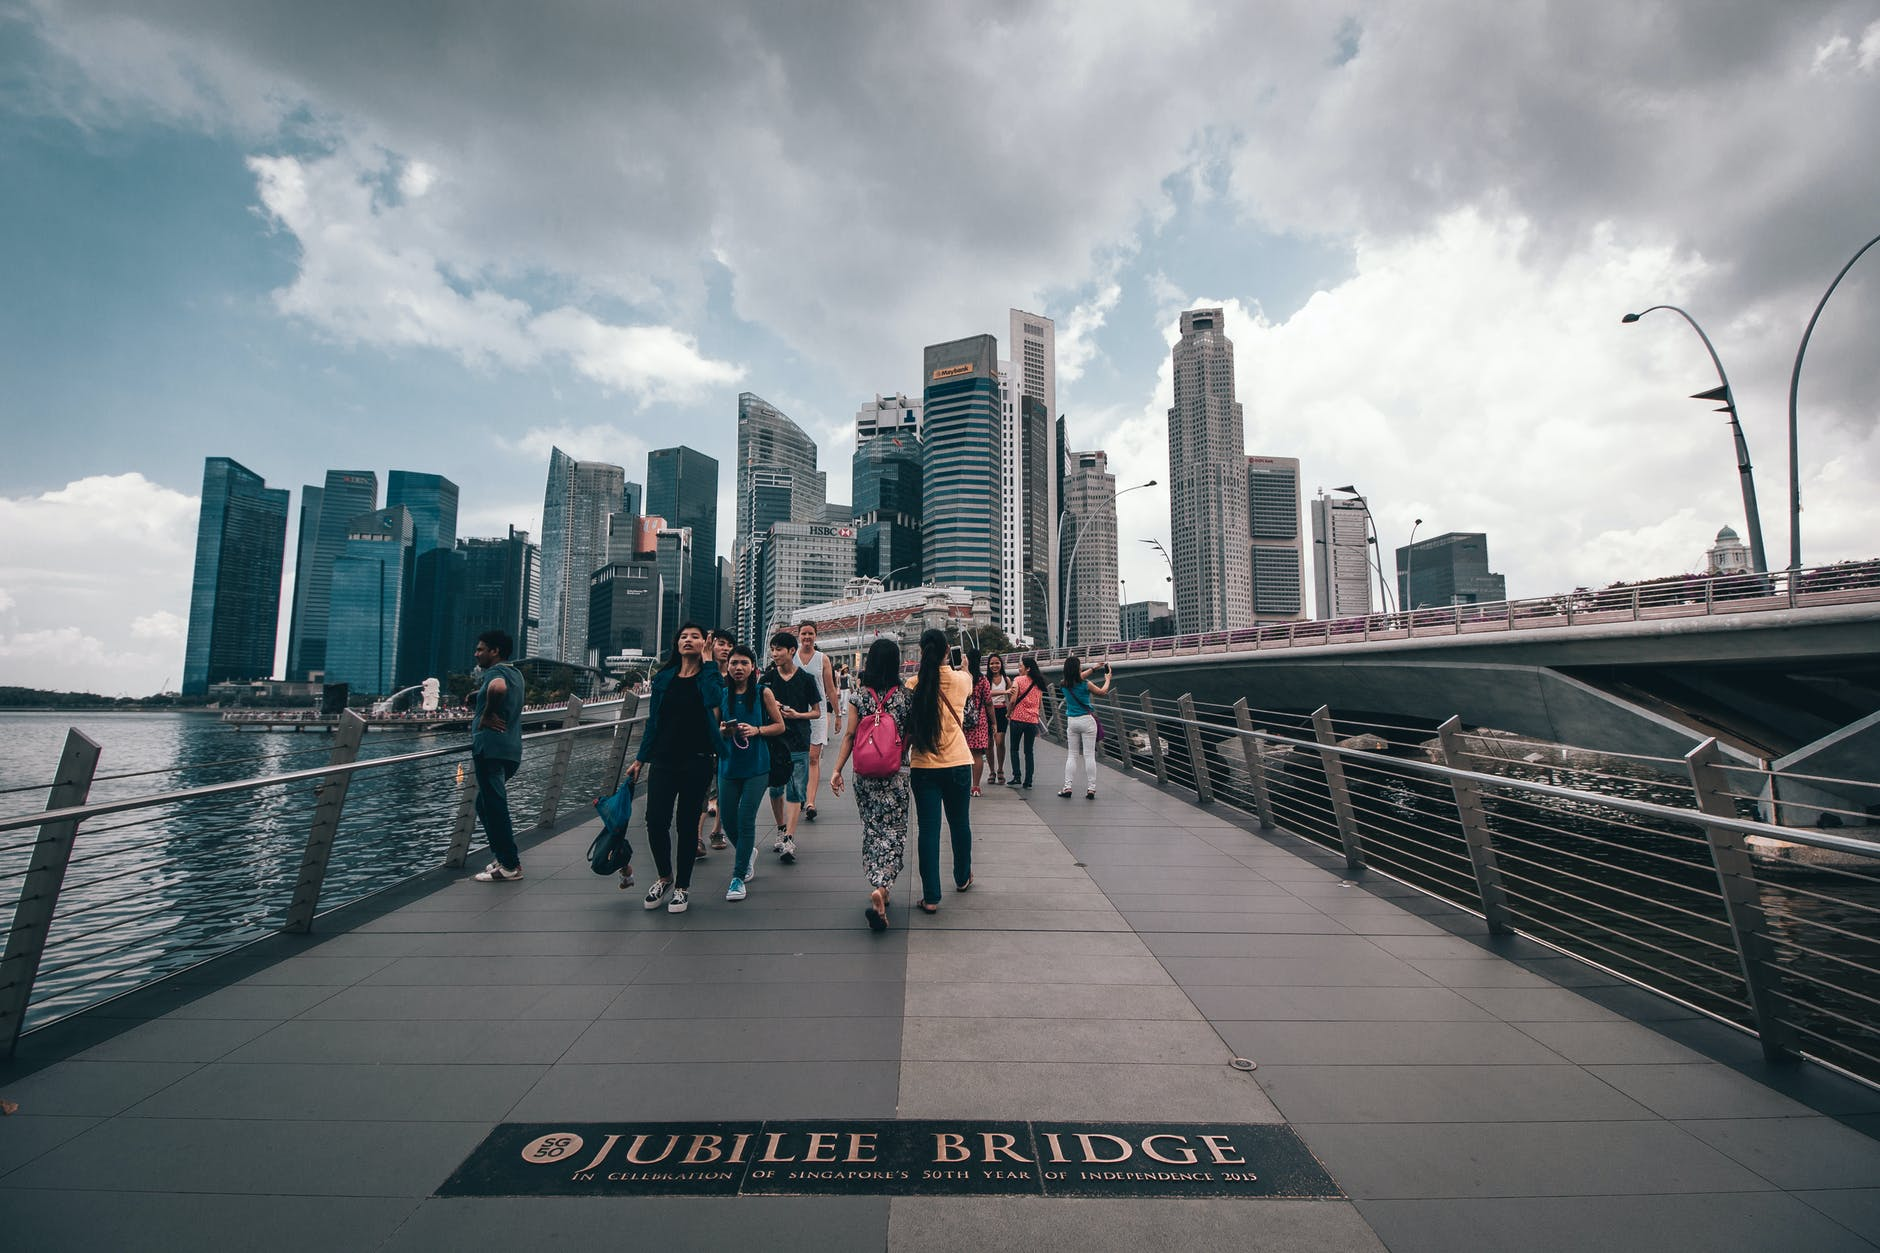 Singapore has a lot to offer, for business and leisure. Source: Pexels